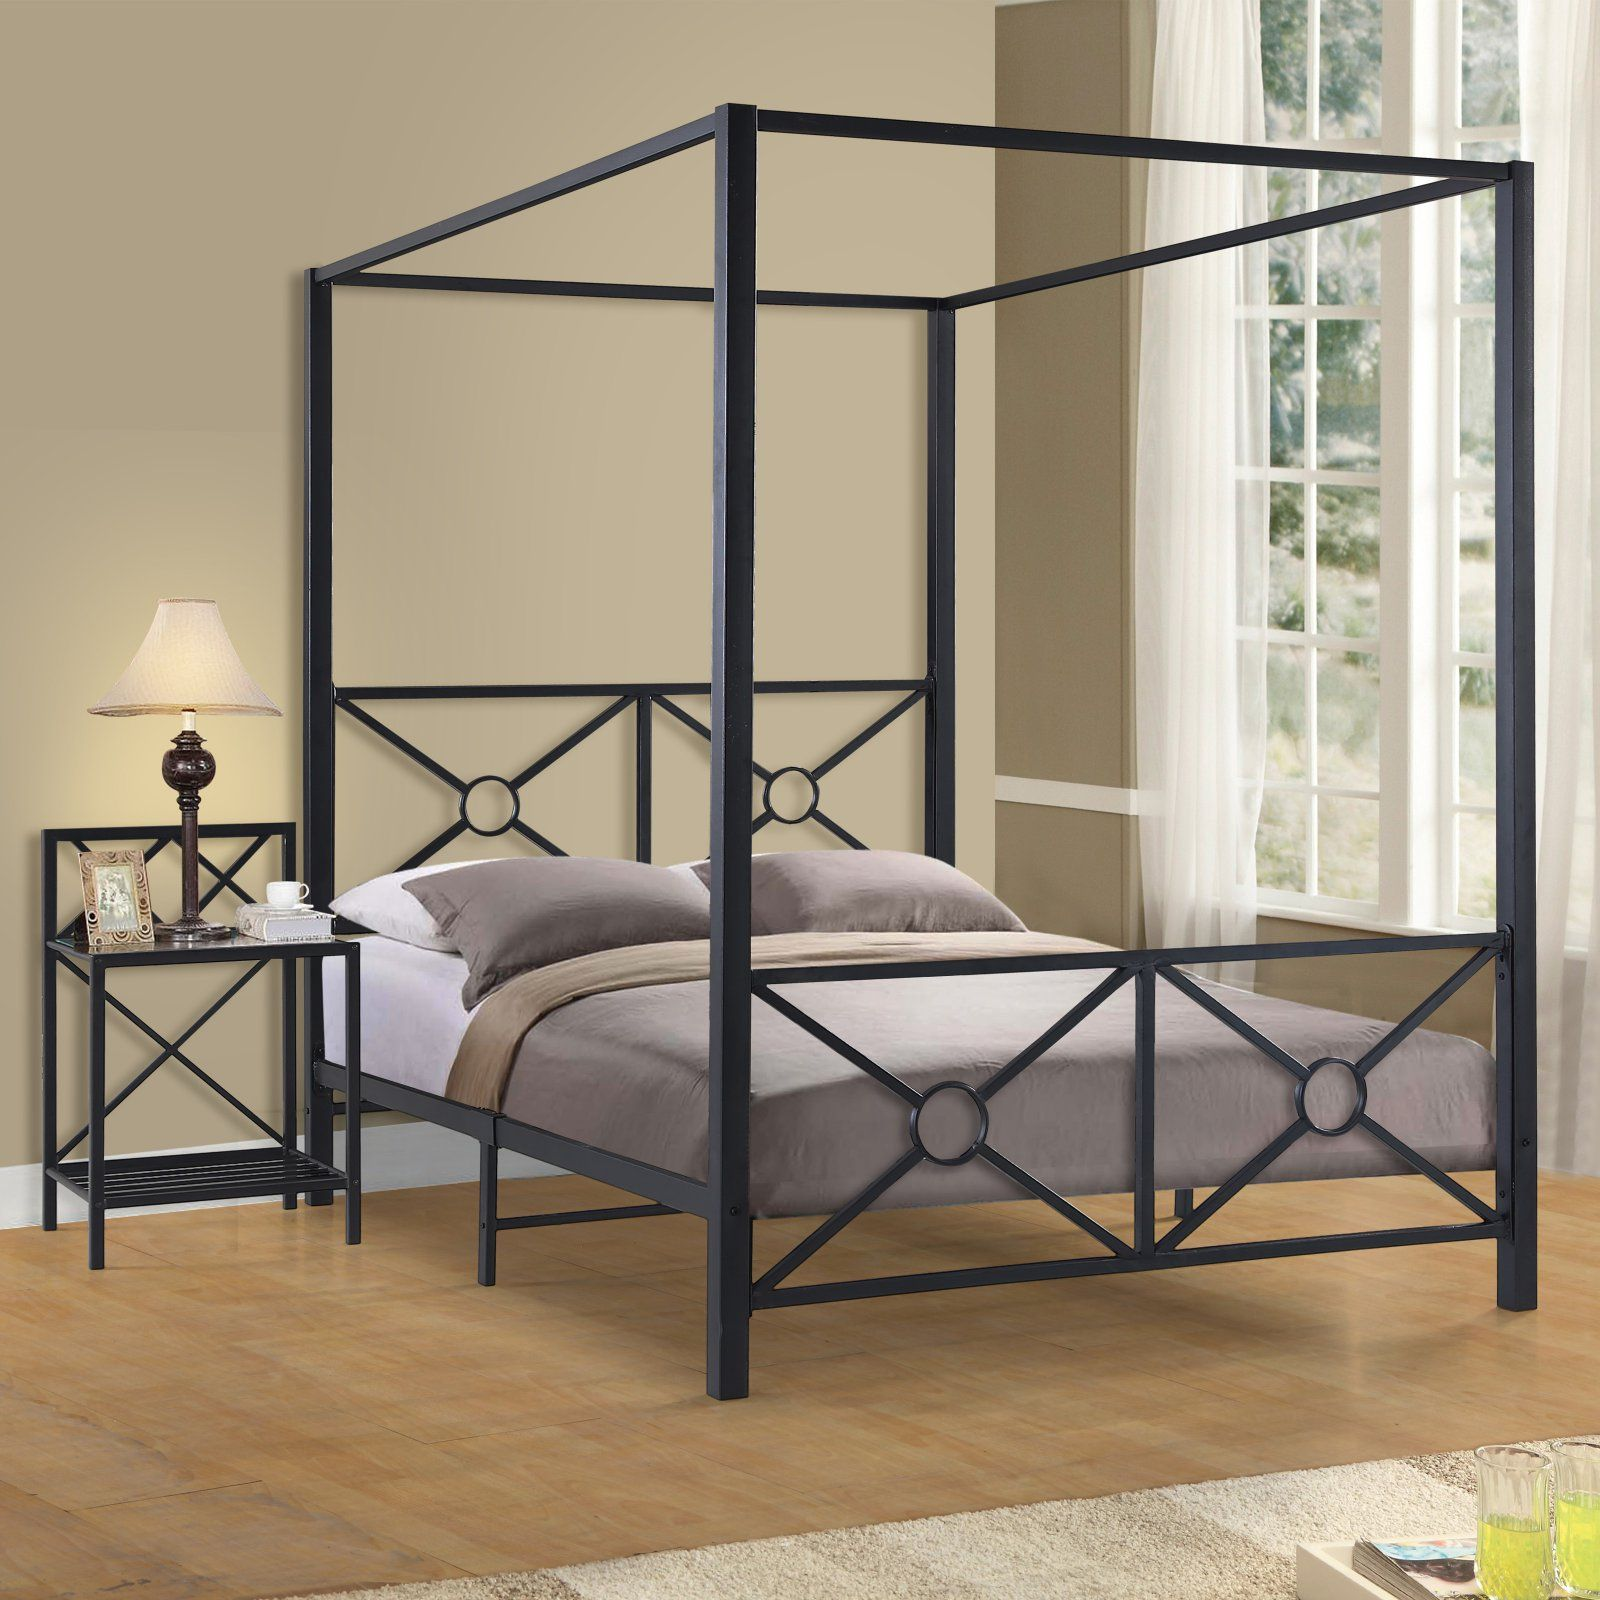 Home Source Industries Marissa Metal Canopy Bed, Size